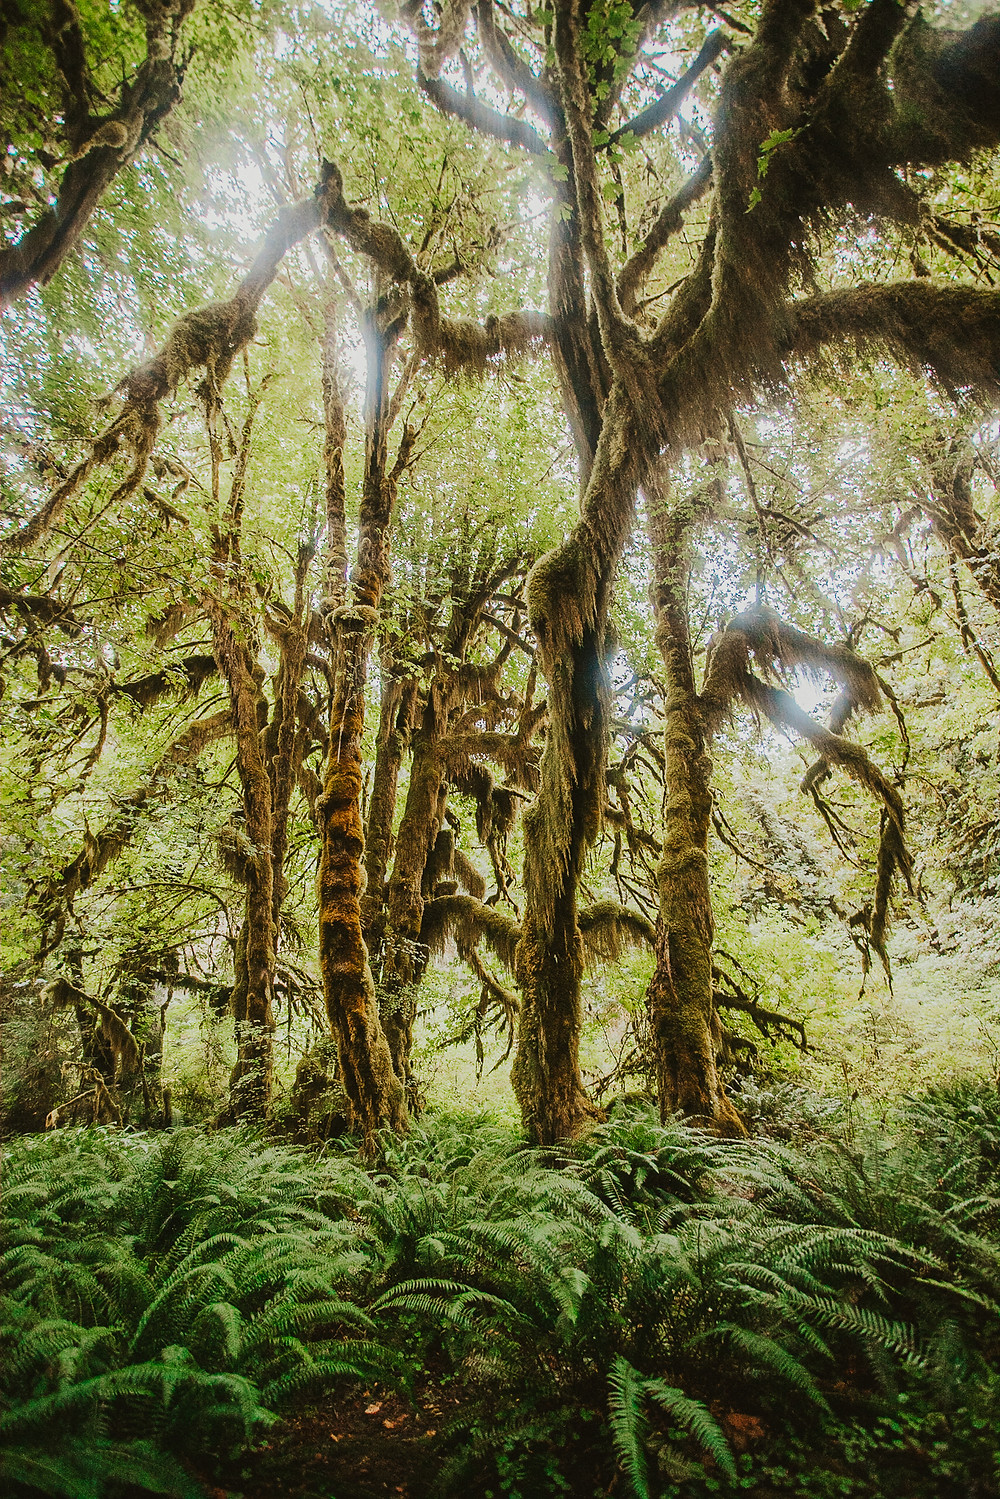 Hoh Rainforest - Olympic Peninsula